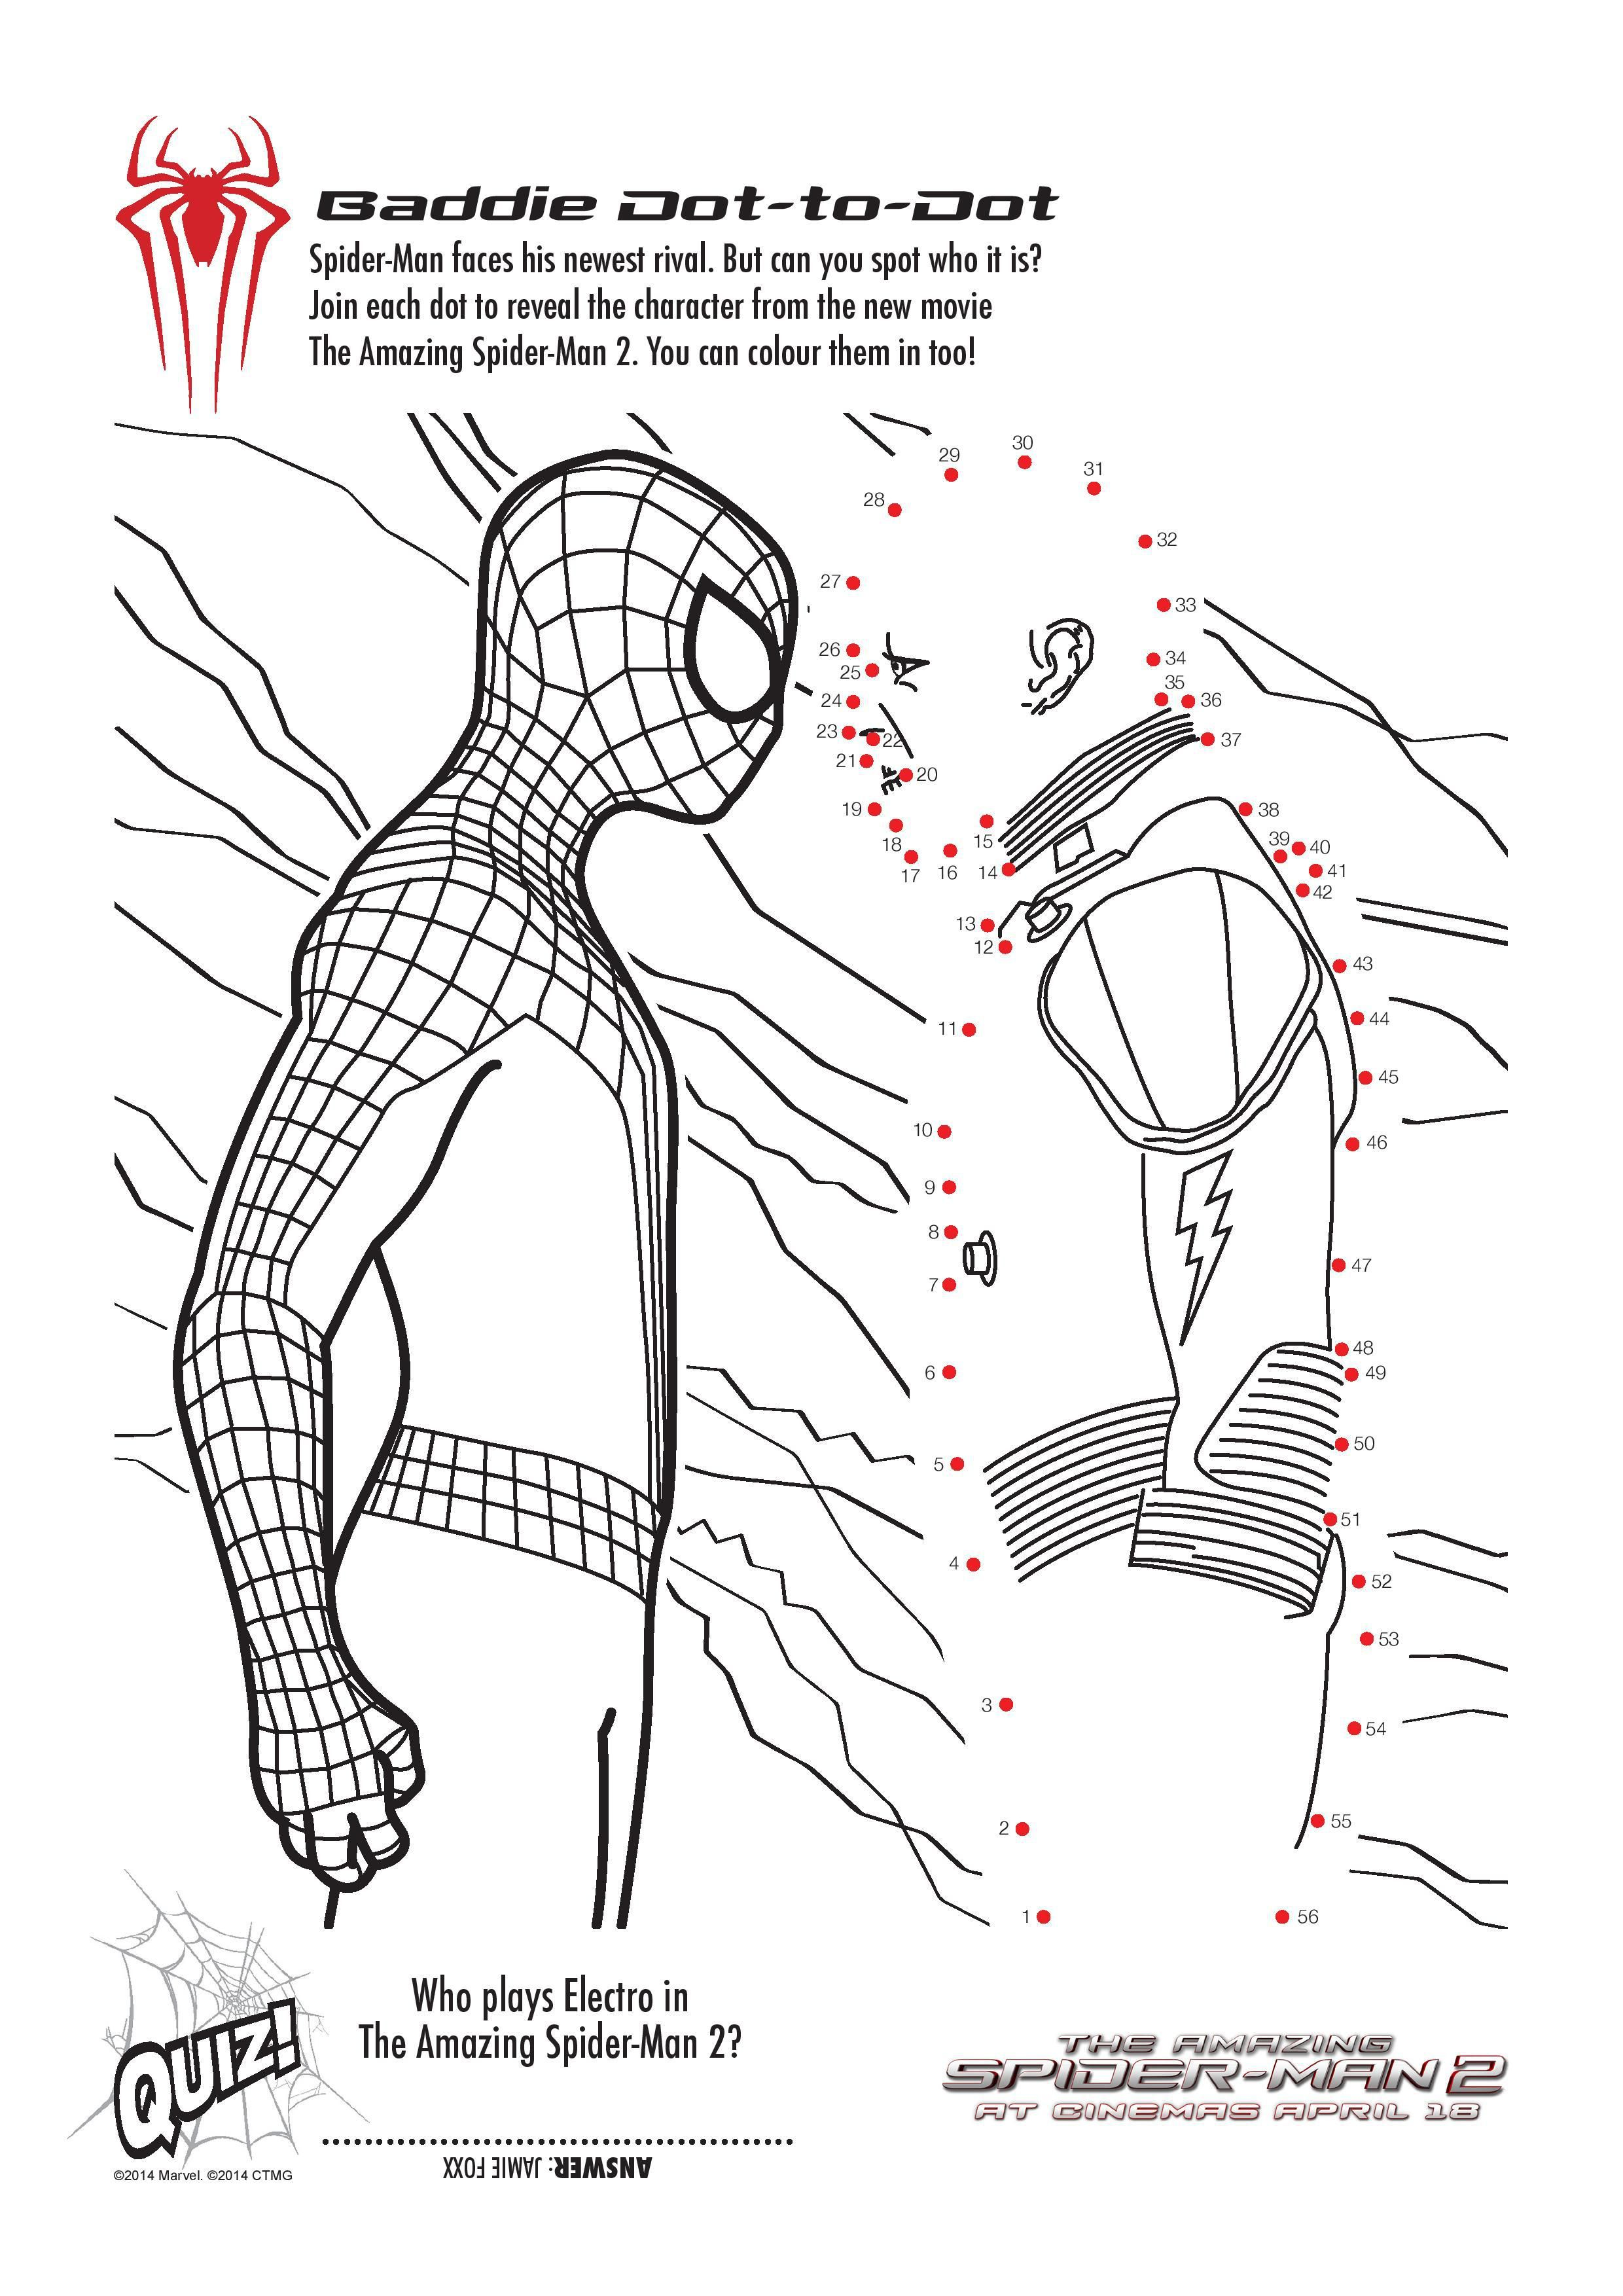 Free Printable Spiderman Colouring Pages and Activity Sheets | Pinterest